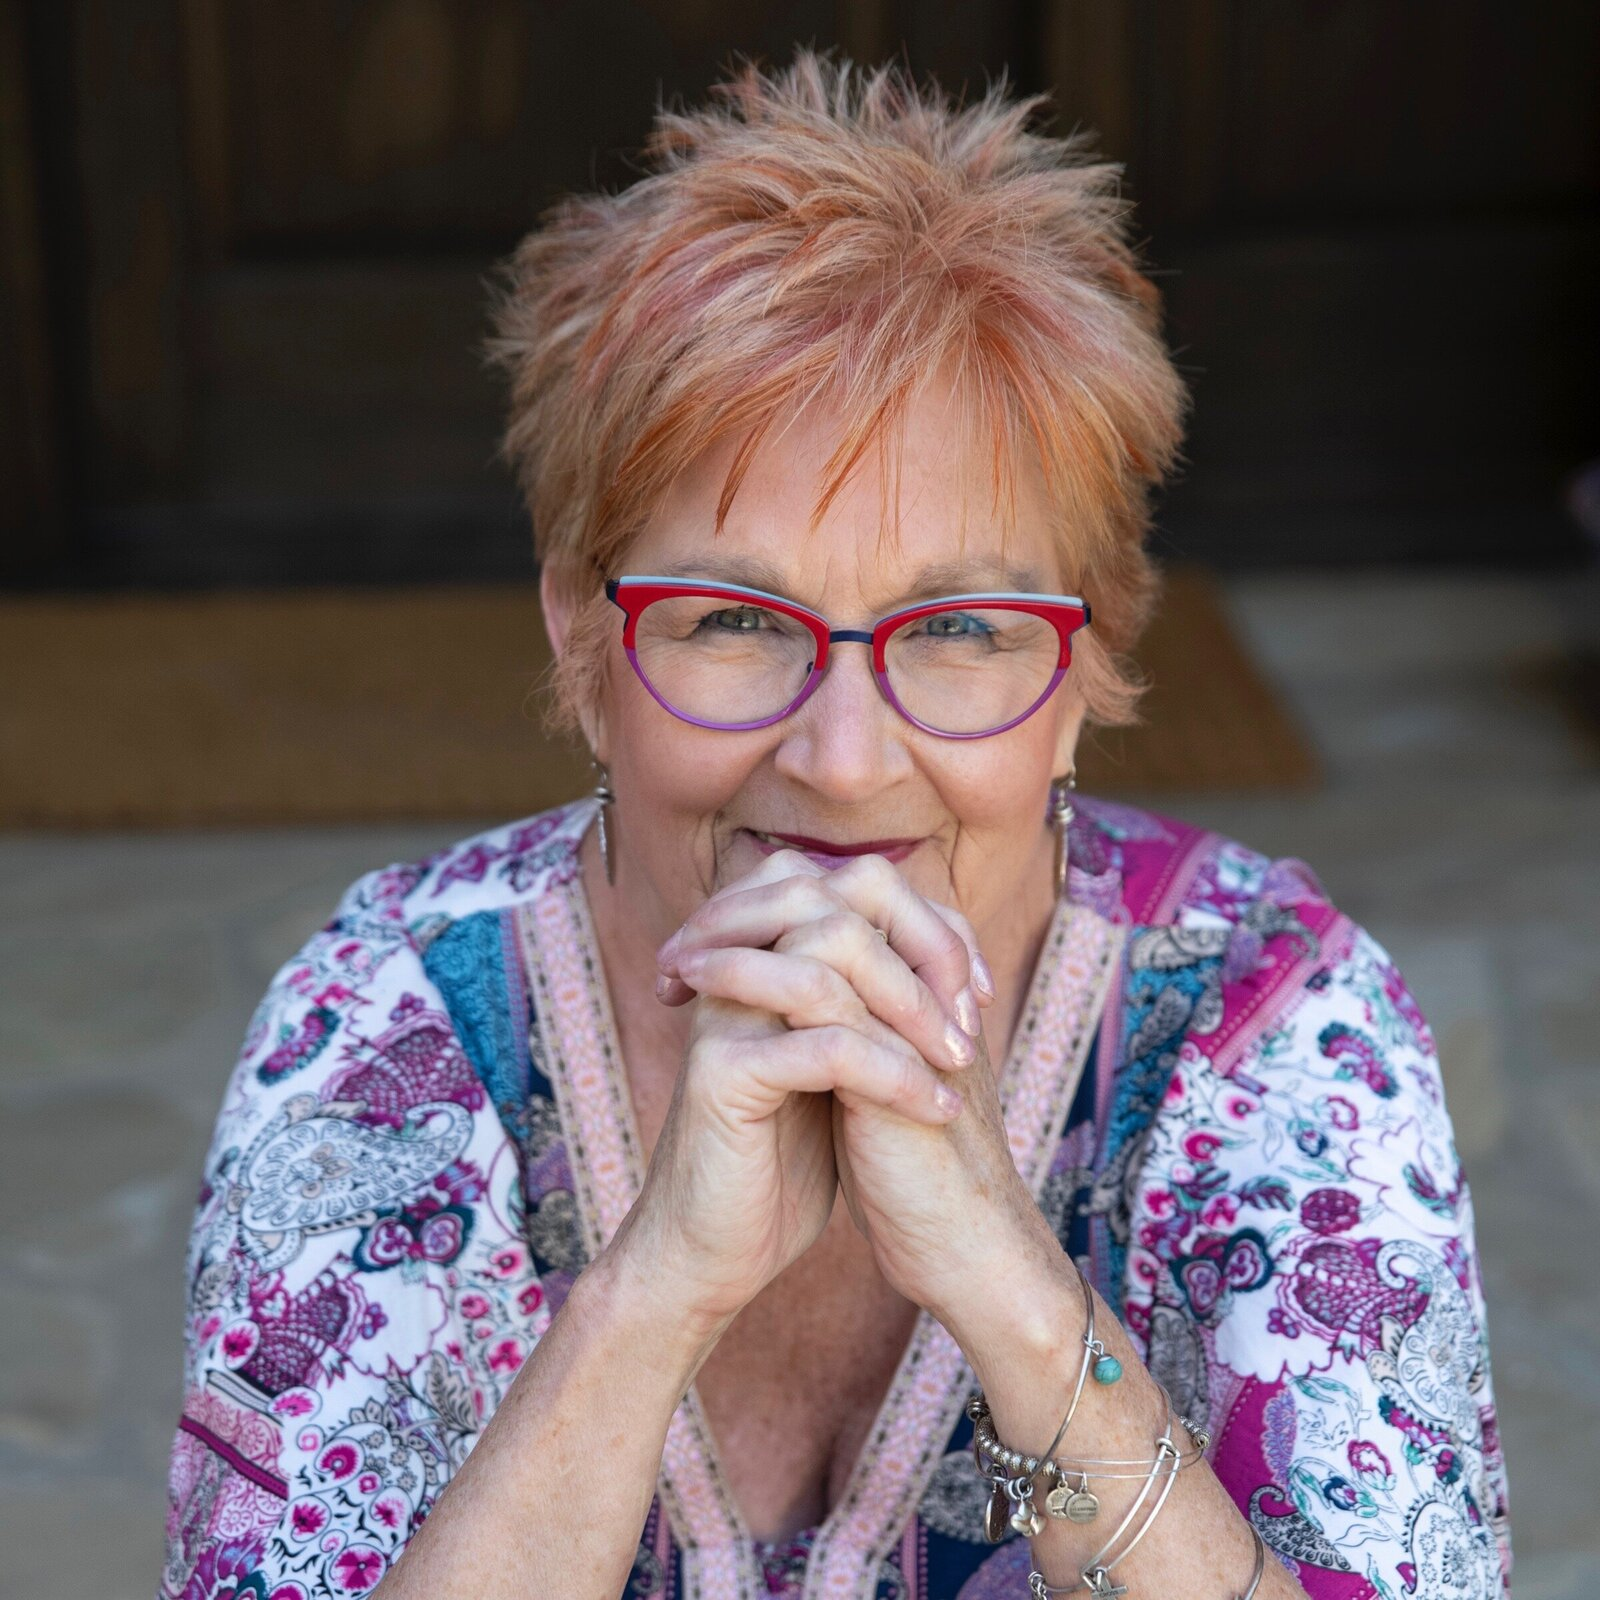 Positively Jane is a women's lifestyle blogger and an over 60 blogger for women. Women's Blog. Robin Bish 141